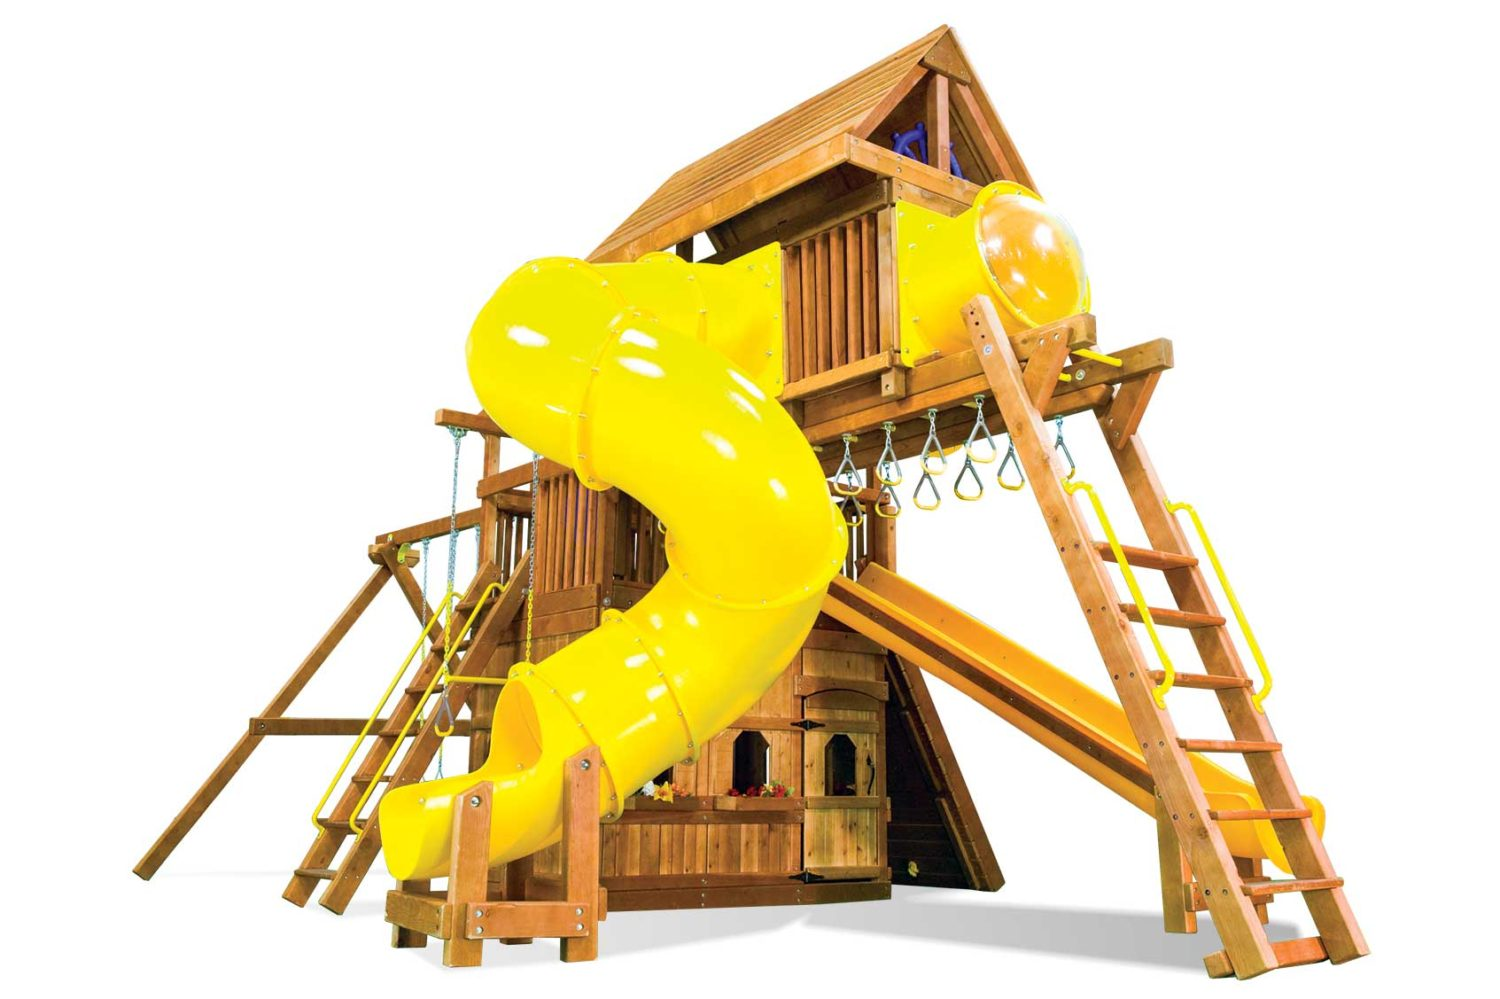 Huckleberry Hideout Pkg V Maxed Out Special Order Wooden Swing Set